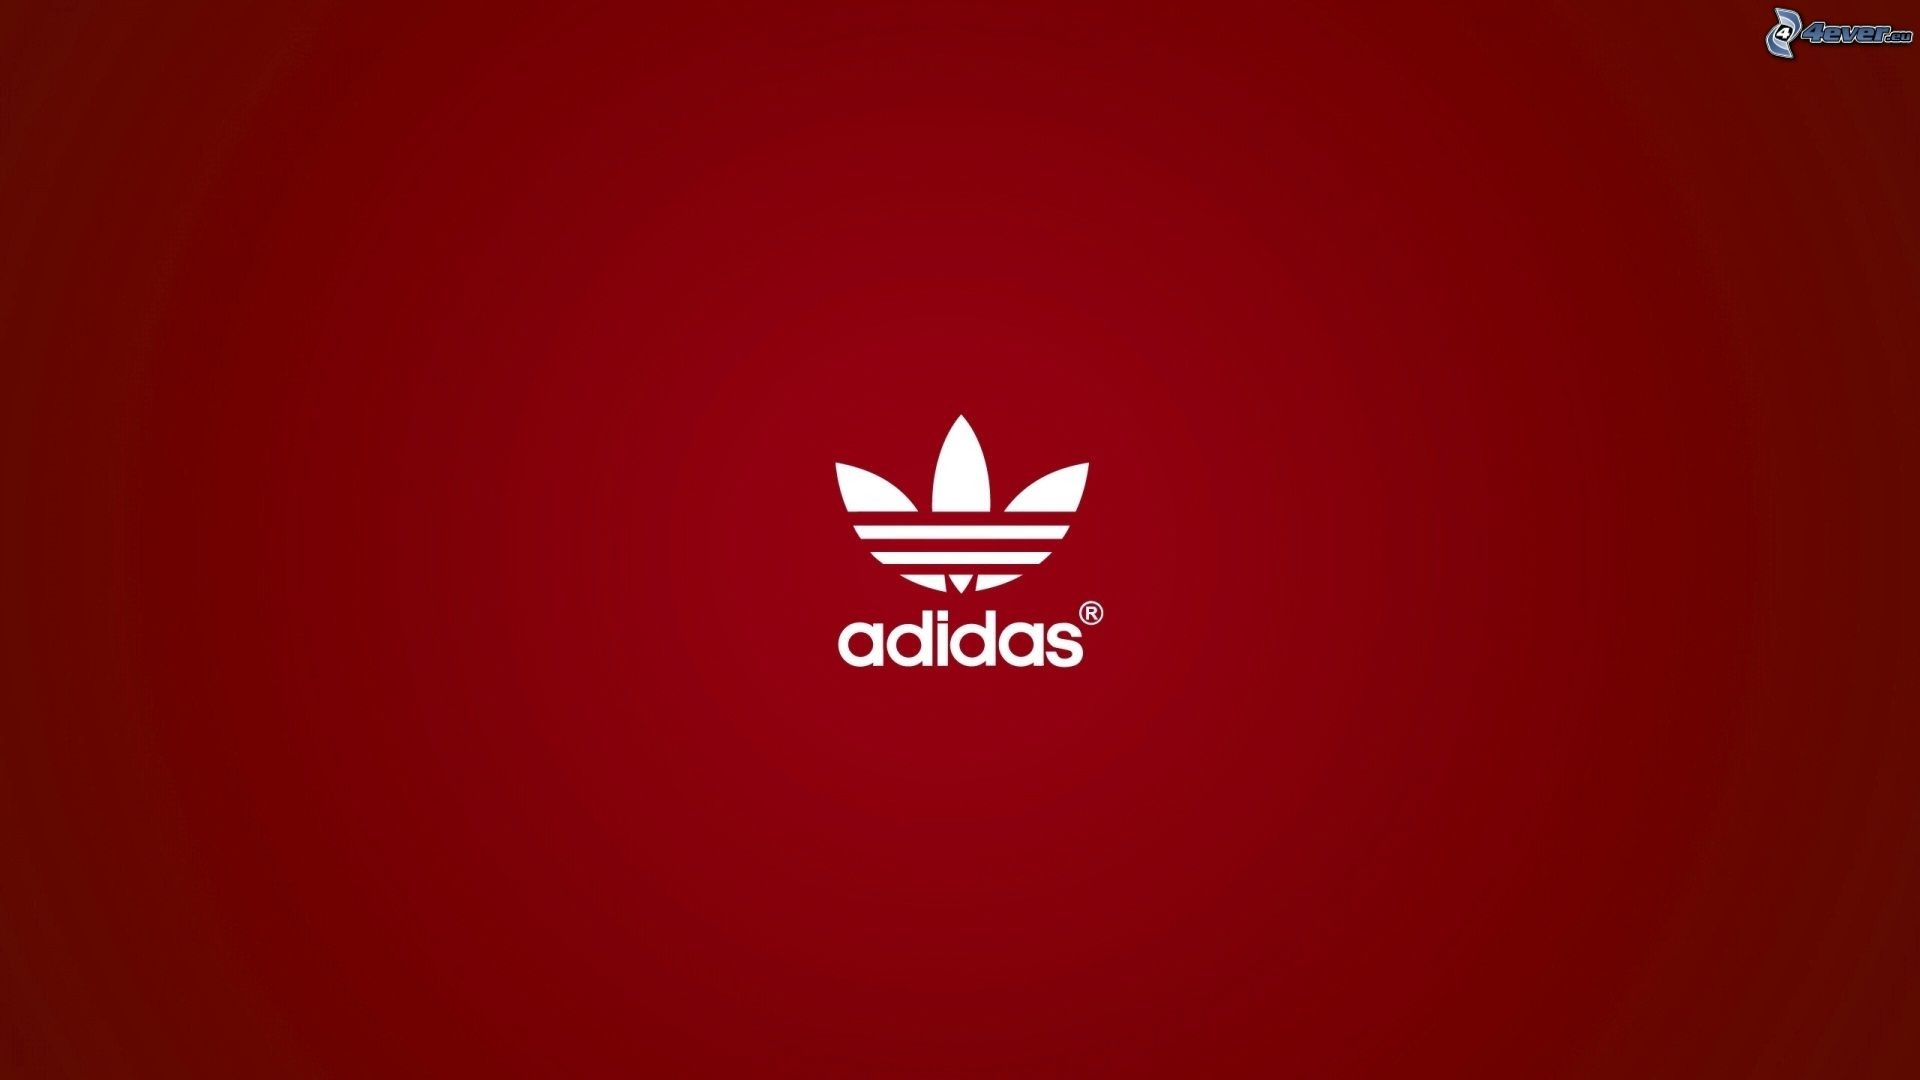 Adidas Wallpapers Top Free Adidas Backgrounds